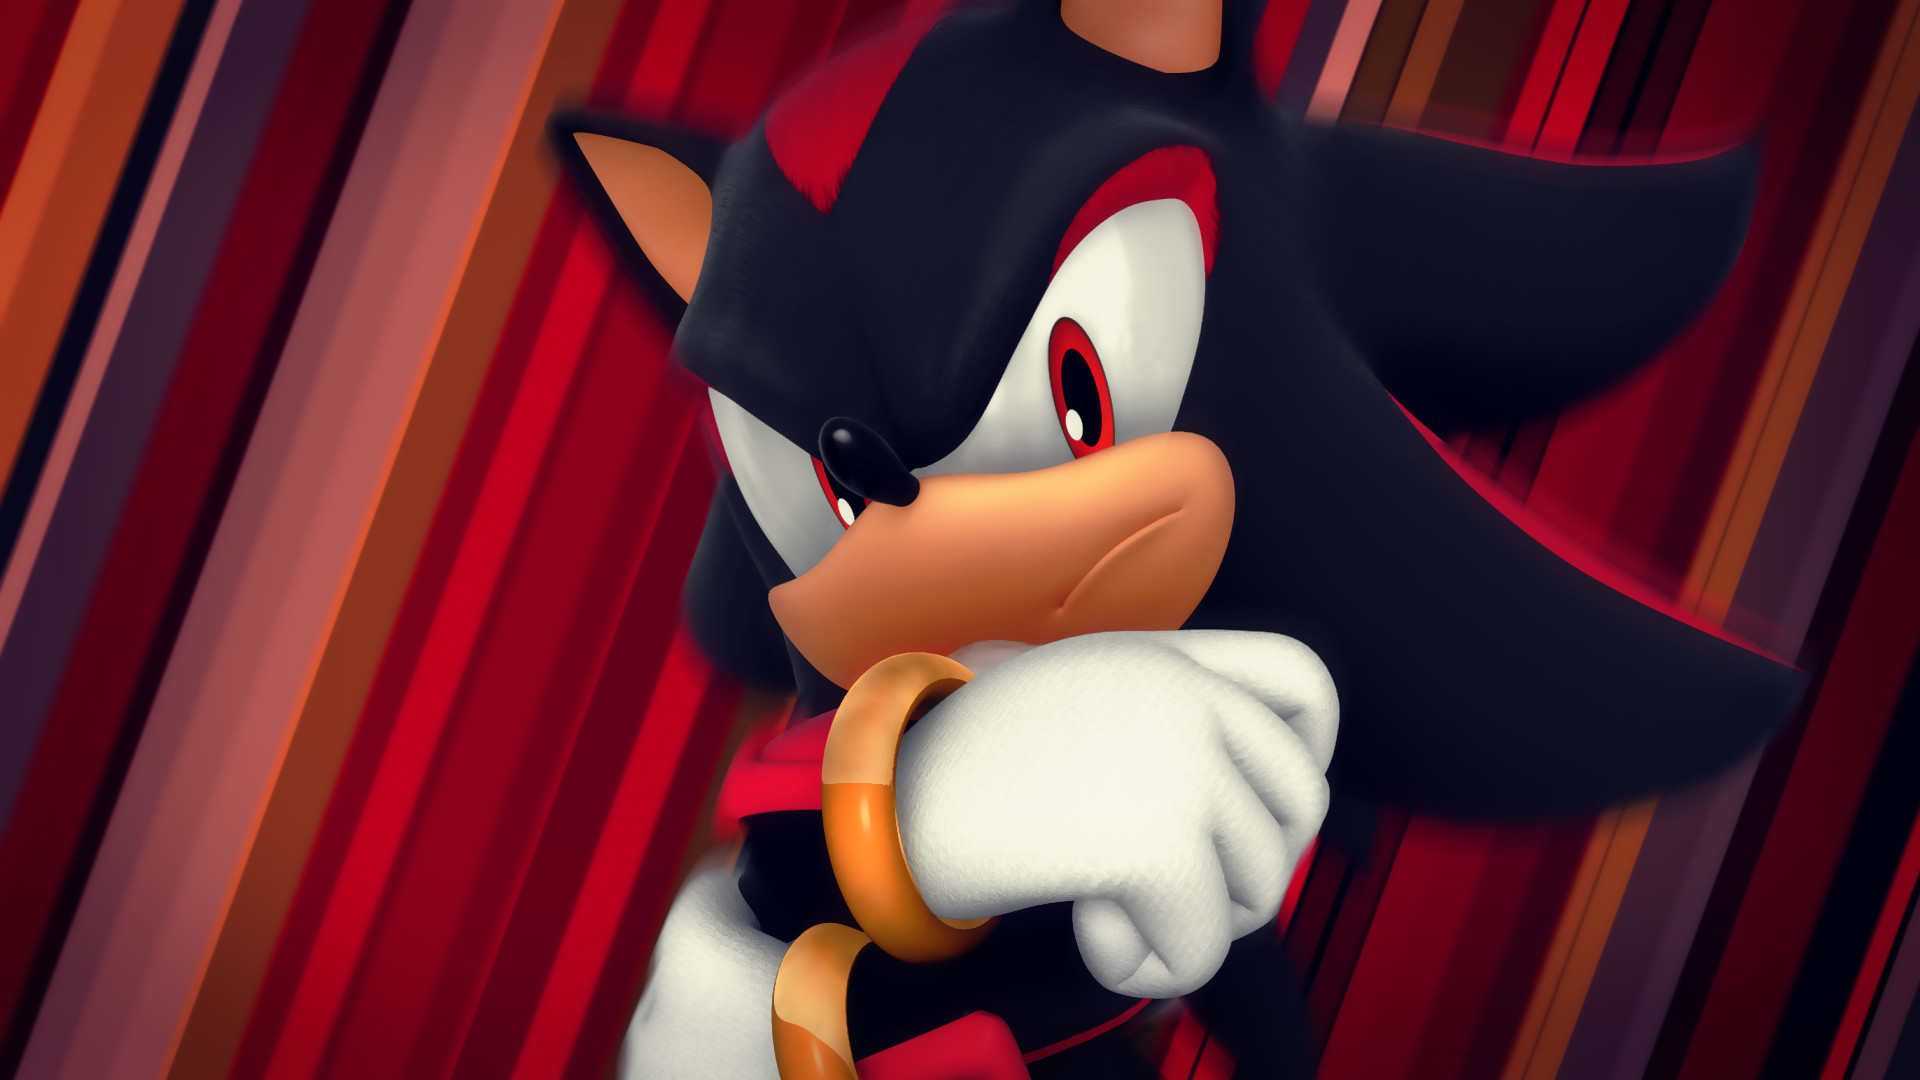 1920x1080 Shadow The Hedgehog HD Wallpaper 18 - 1920 X 1080